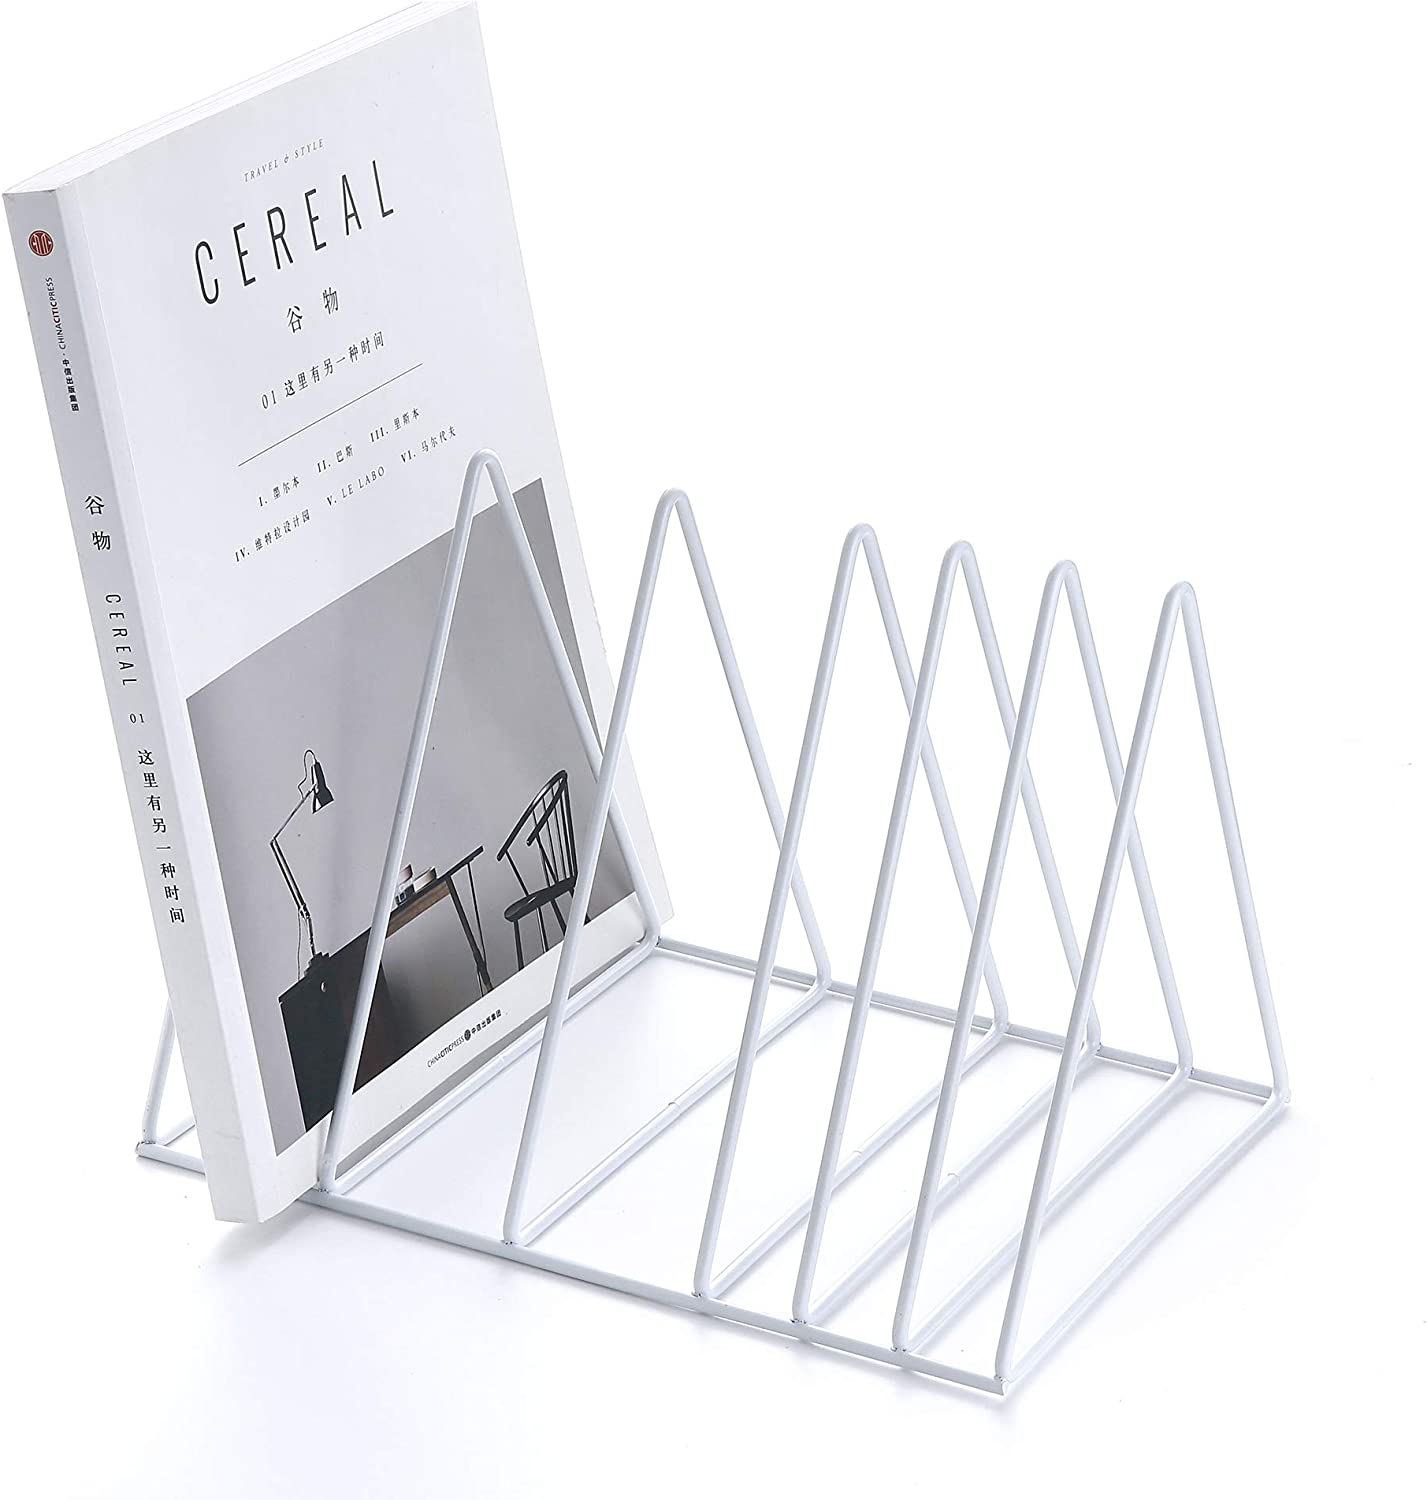 Keador File Holder Stand, Magazine Rack Book Record Holder, File Organizer Magazine Rack, Metal Desktop Book Shelf Book Stand, Triangle Iron Book Rack for Office Home Decor (Upgraded, White)